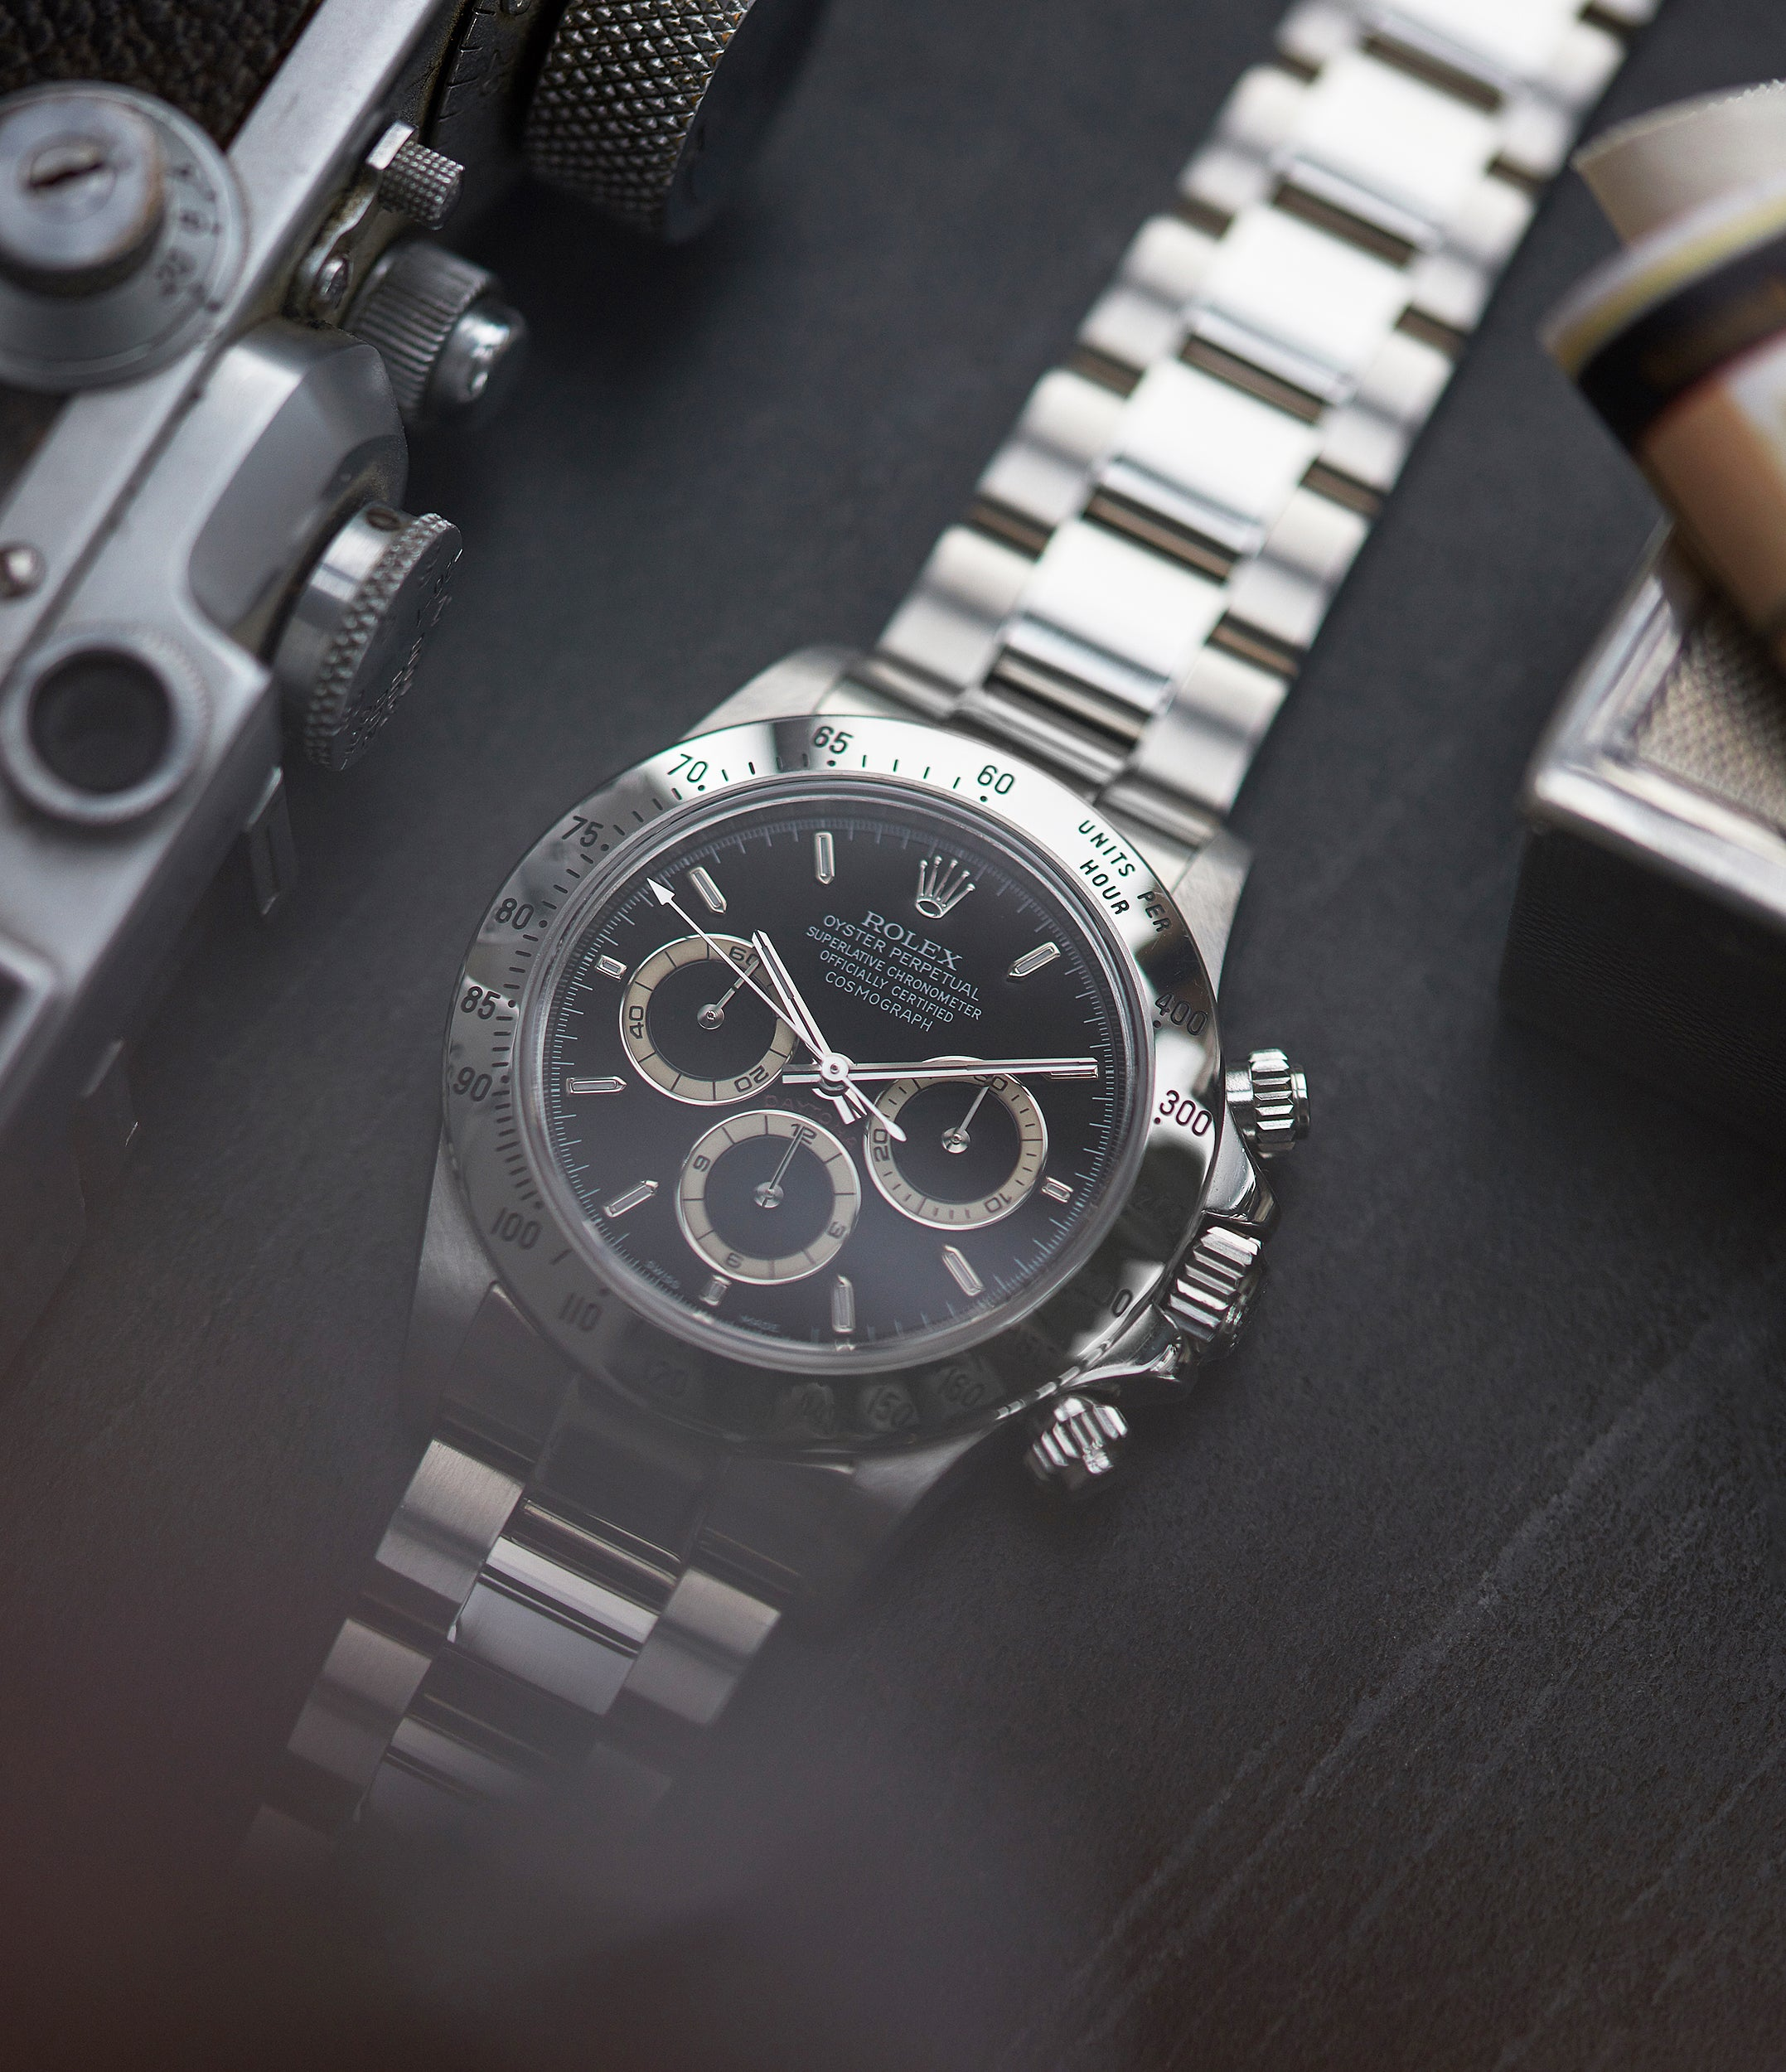 shop vintage Rolex Zenith Daytona 16520 P series steel chronograph watch black dial for sale online at A Collected Man London UK specialist of rare watches